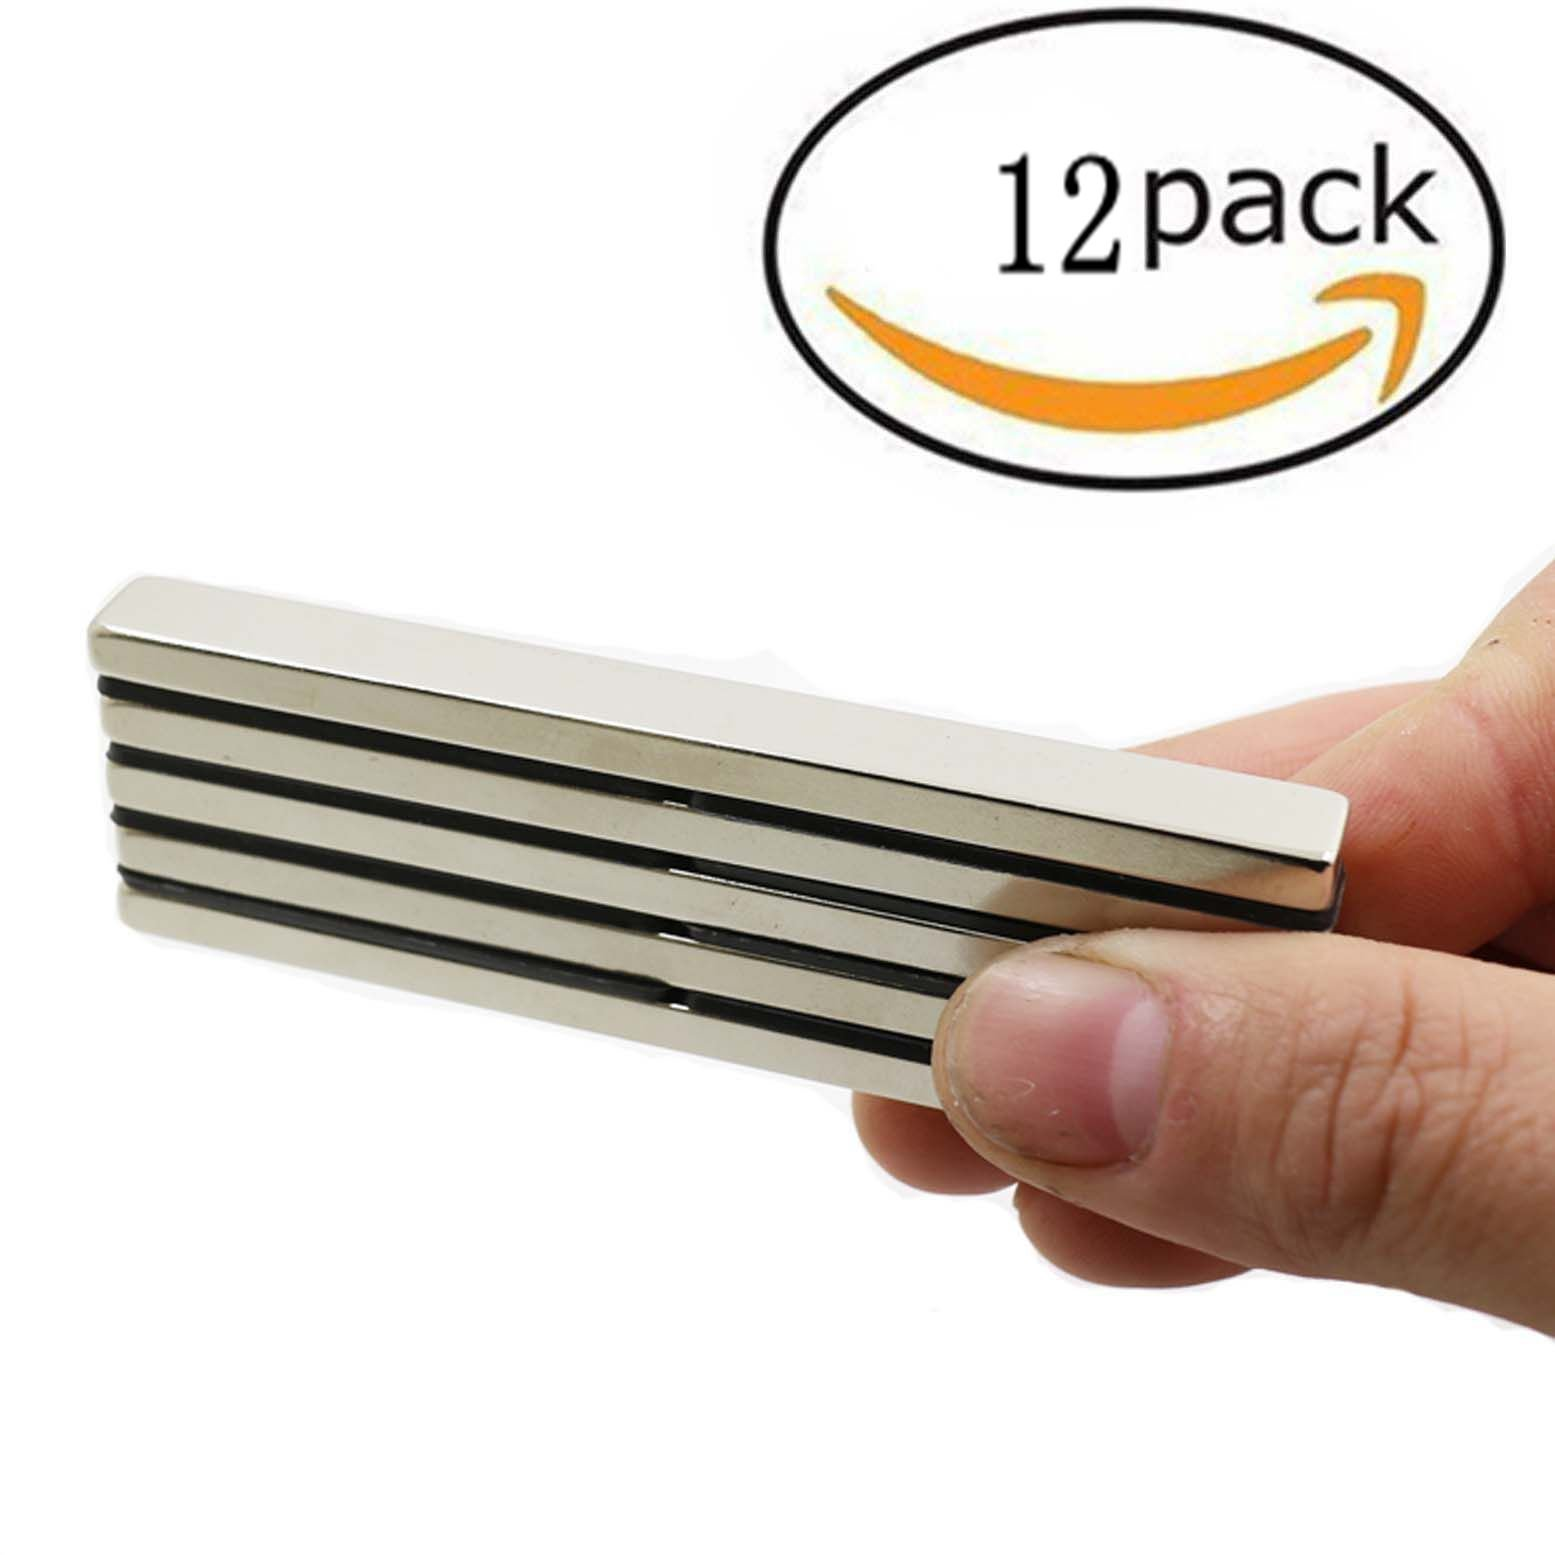 ZHW Powerful neodymium Bar Magnets, Rare-Earth Metal neodymium Magnet, N45, Incredibly Strong 33+ LB Strength - 60 x 10 x 4 mm (12 Pack) by ZHW (Image #1)